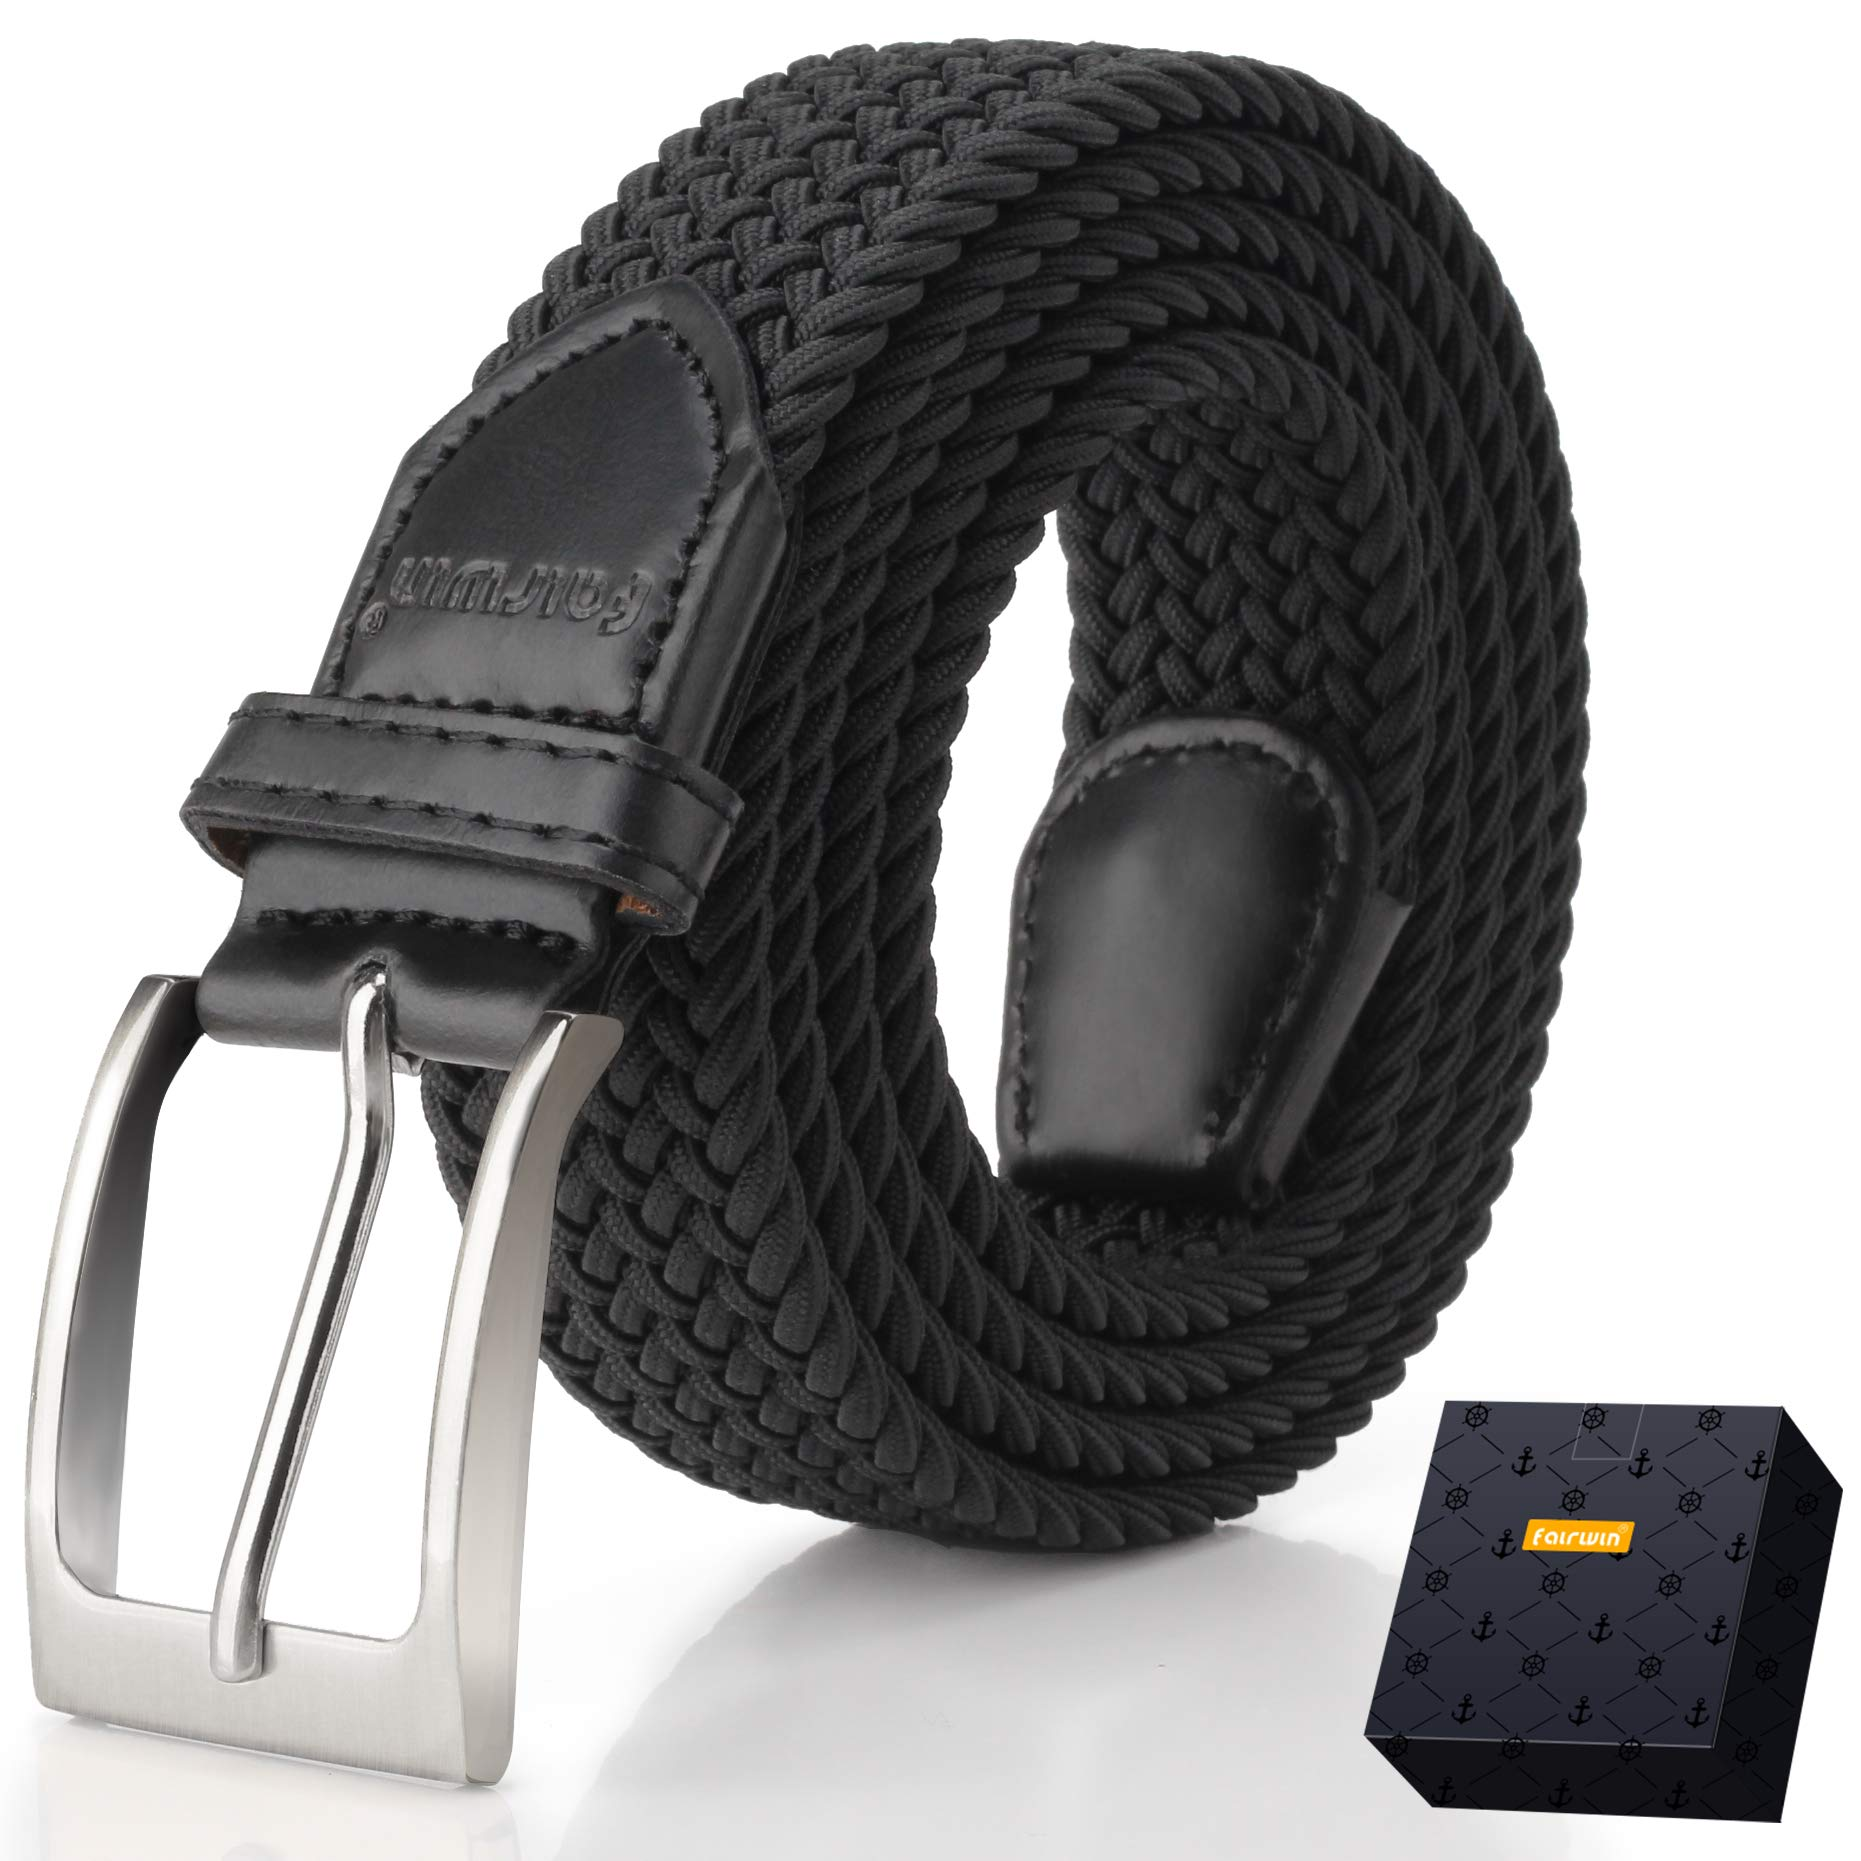 Elastic Braided Belt, Fairwin Enduring Stretch Woven Belt for Men/Women/Junior (S (for waist 28''-31''), Black)